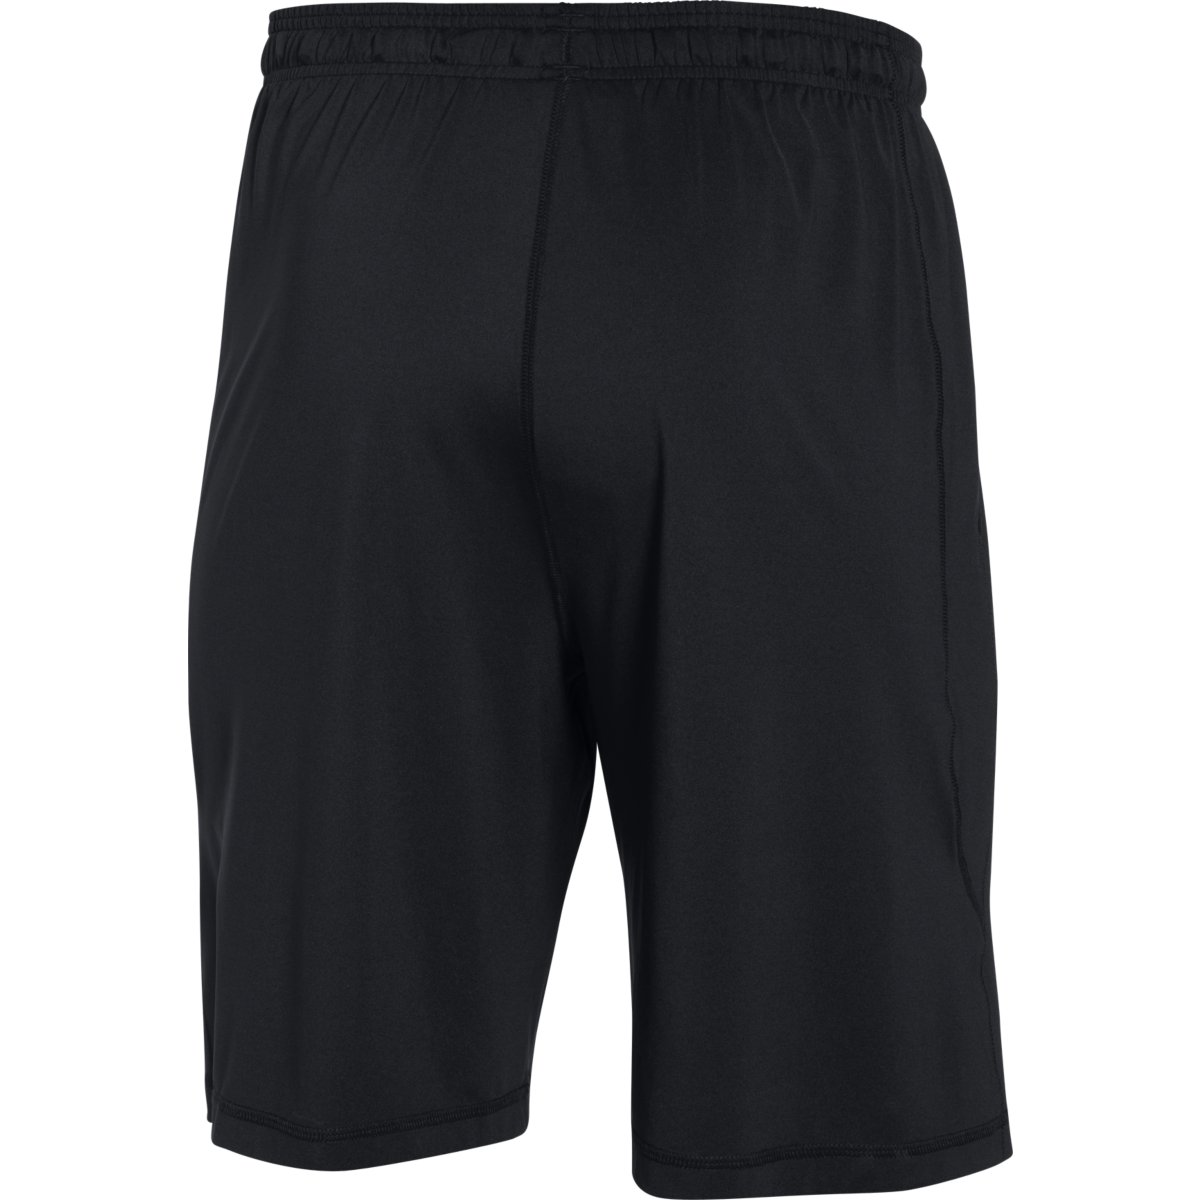 Under Armour Men's UA Raid Shorts